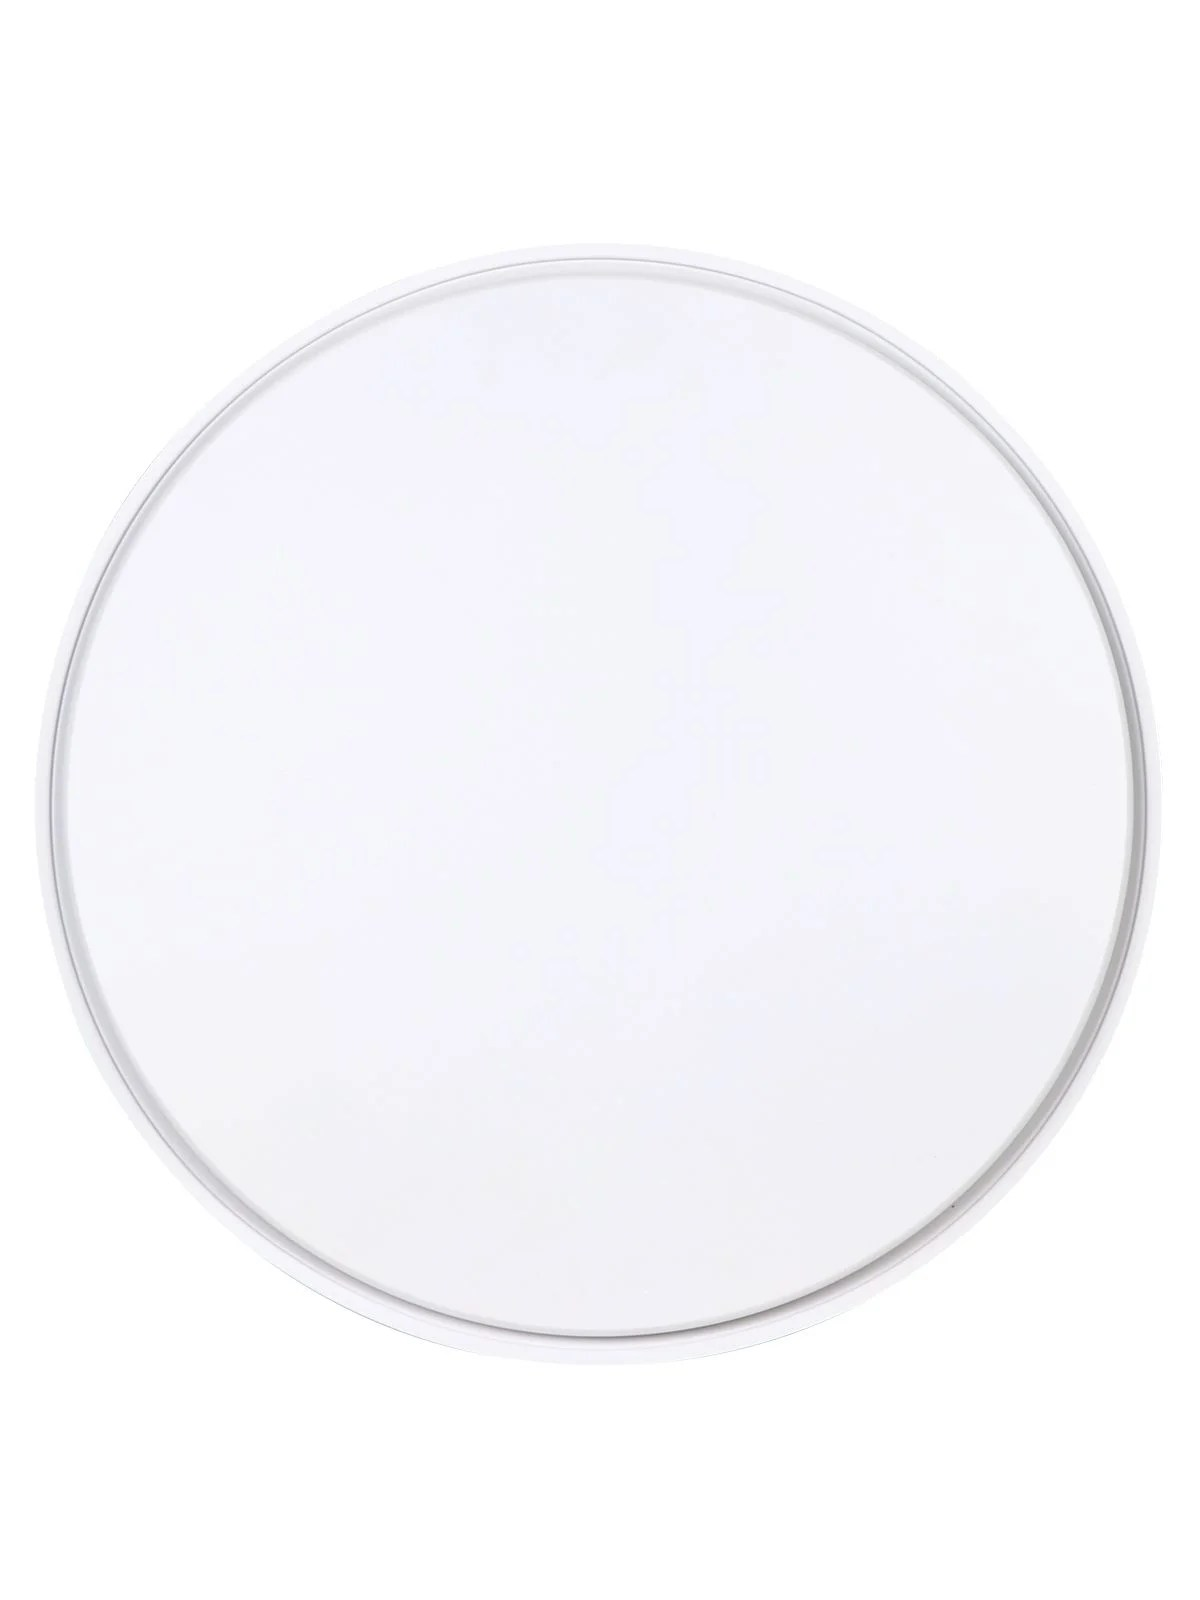 reef 250mm round exhaust fan in white